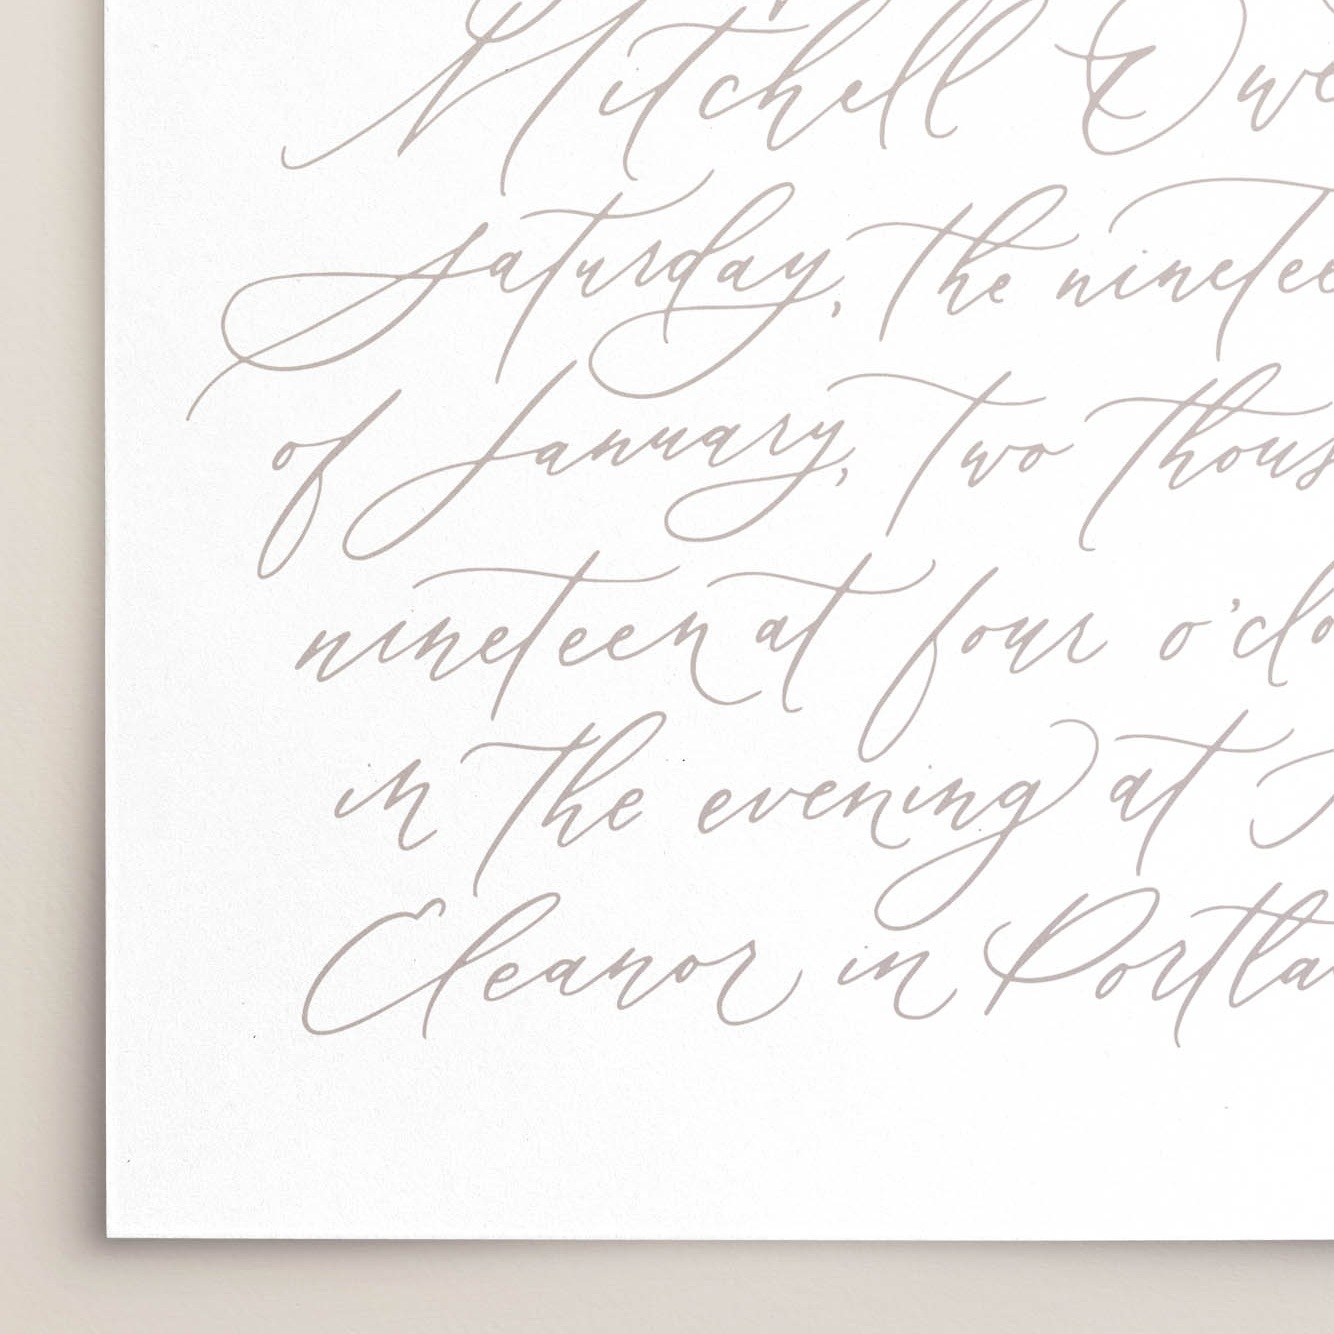 Fine Art Stationery by Caitlin O'Bryant Design.